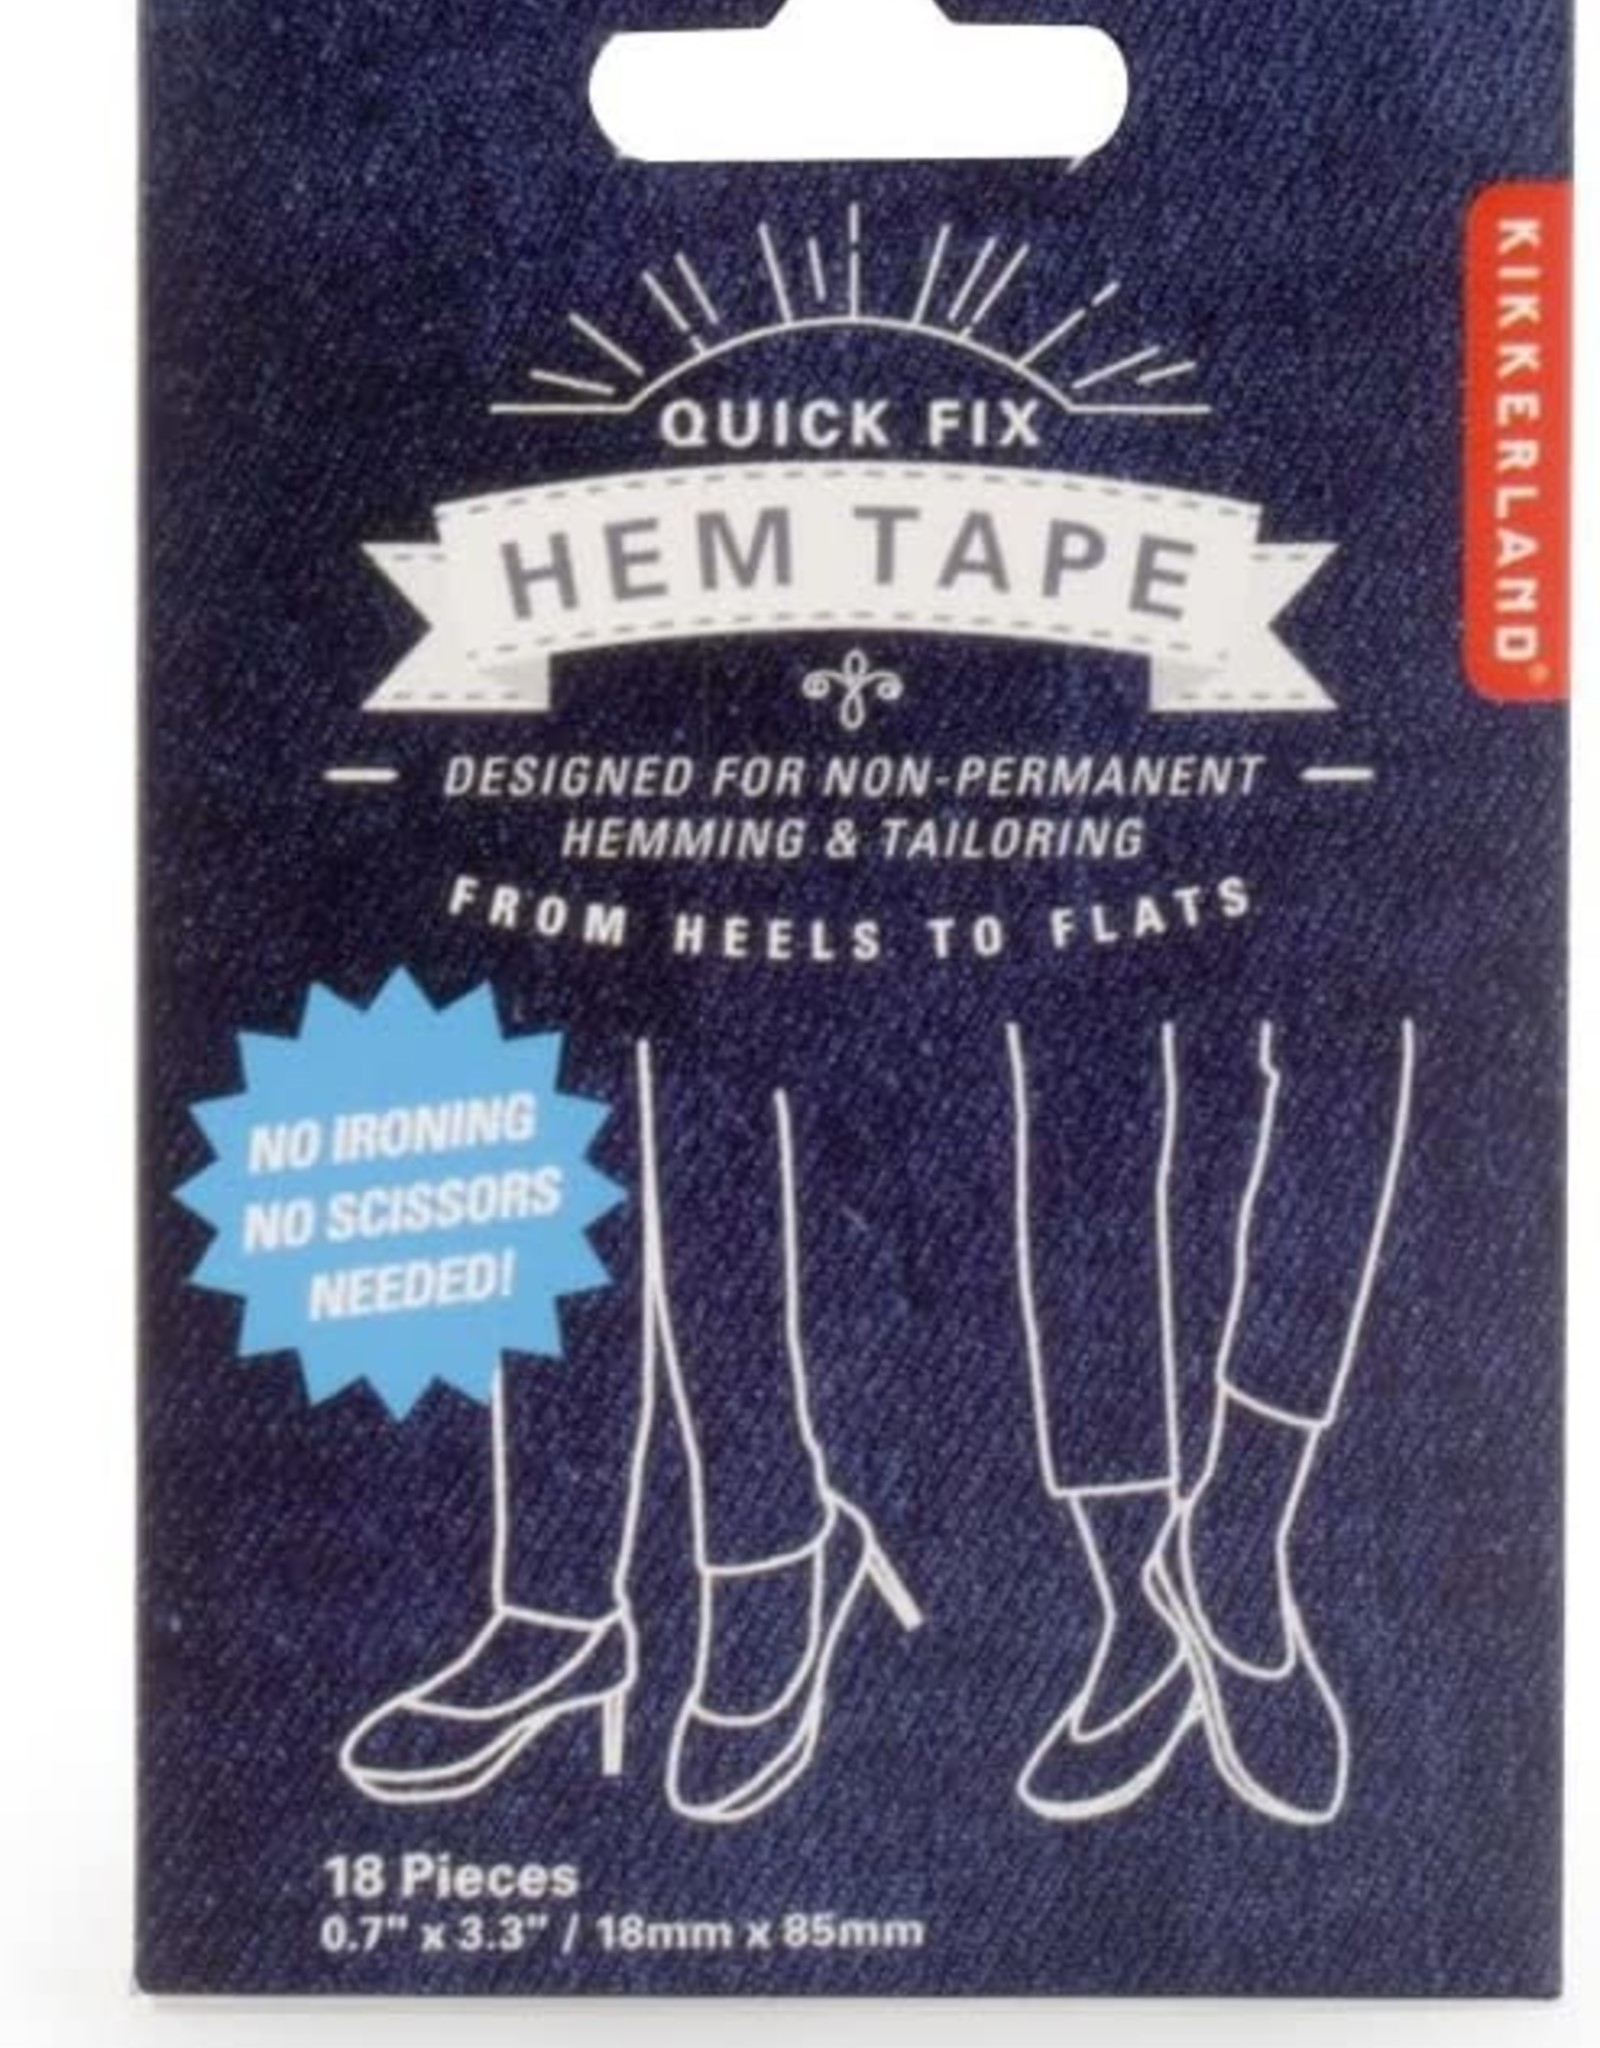 Quick Fix Hem Tape